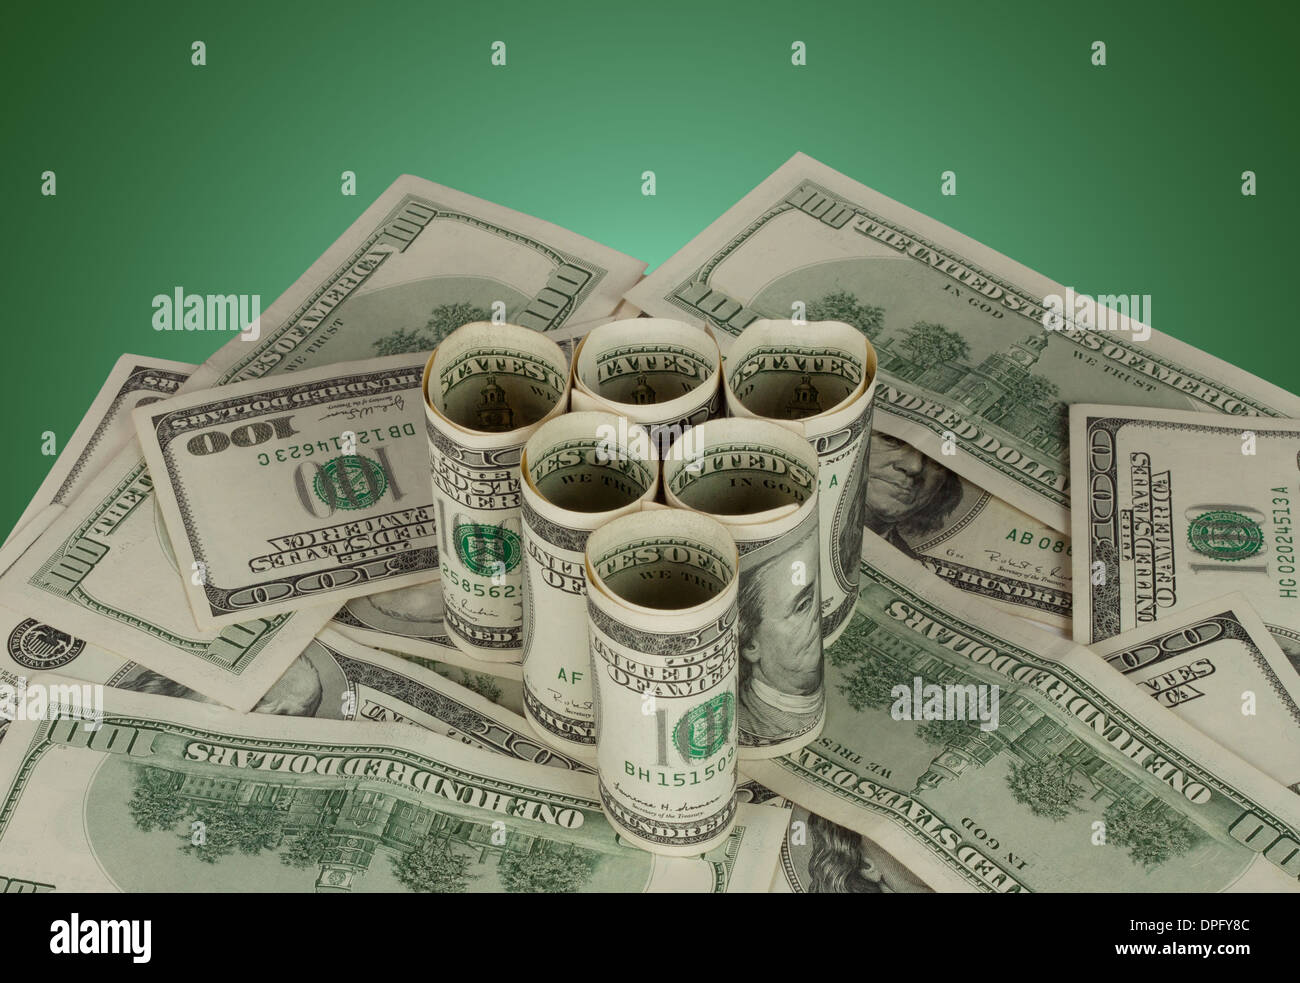 Triangle of hundred dollar bills on green background - Stock Image